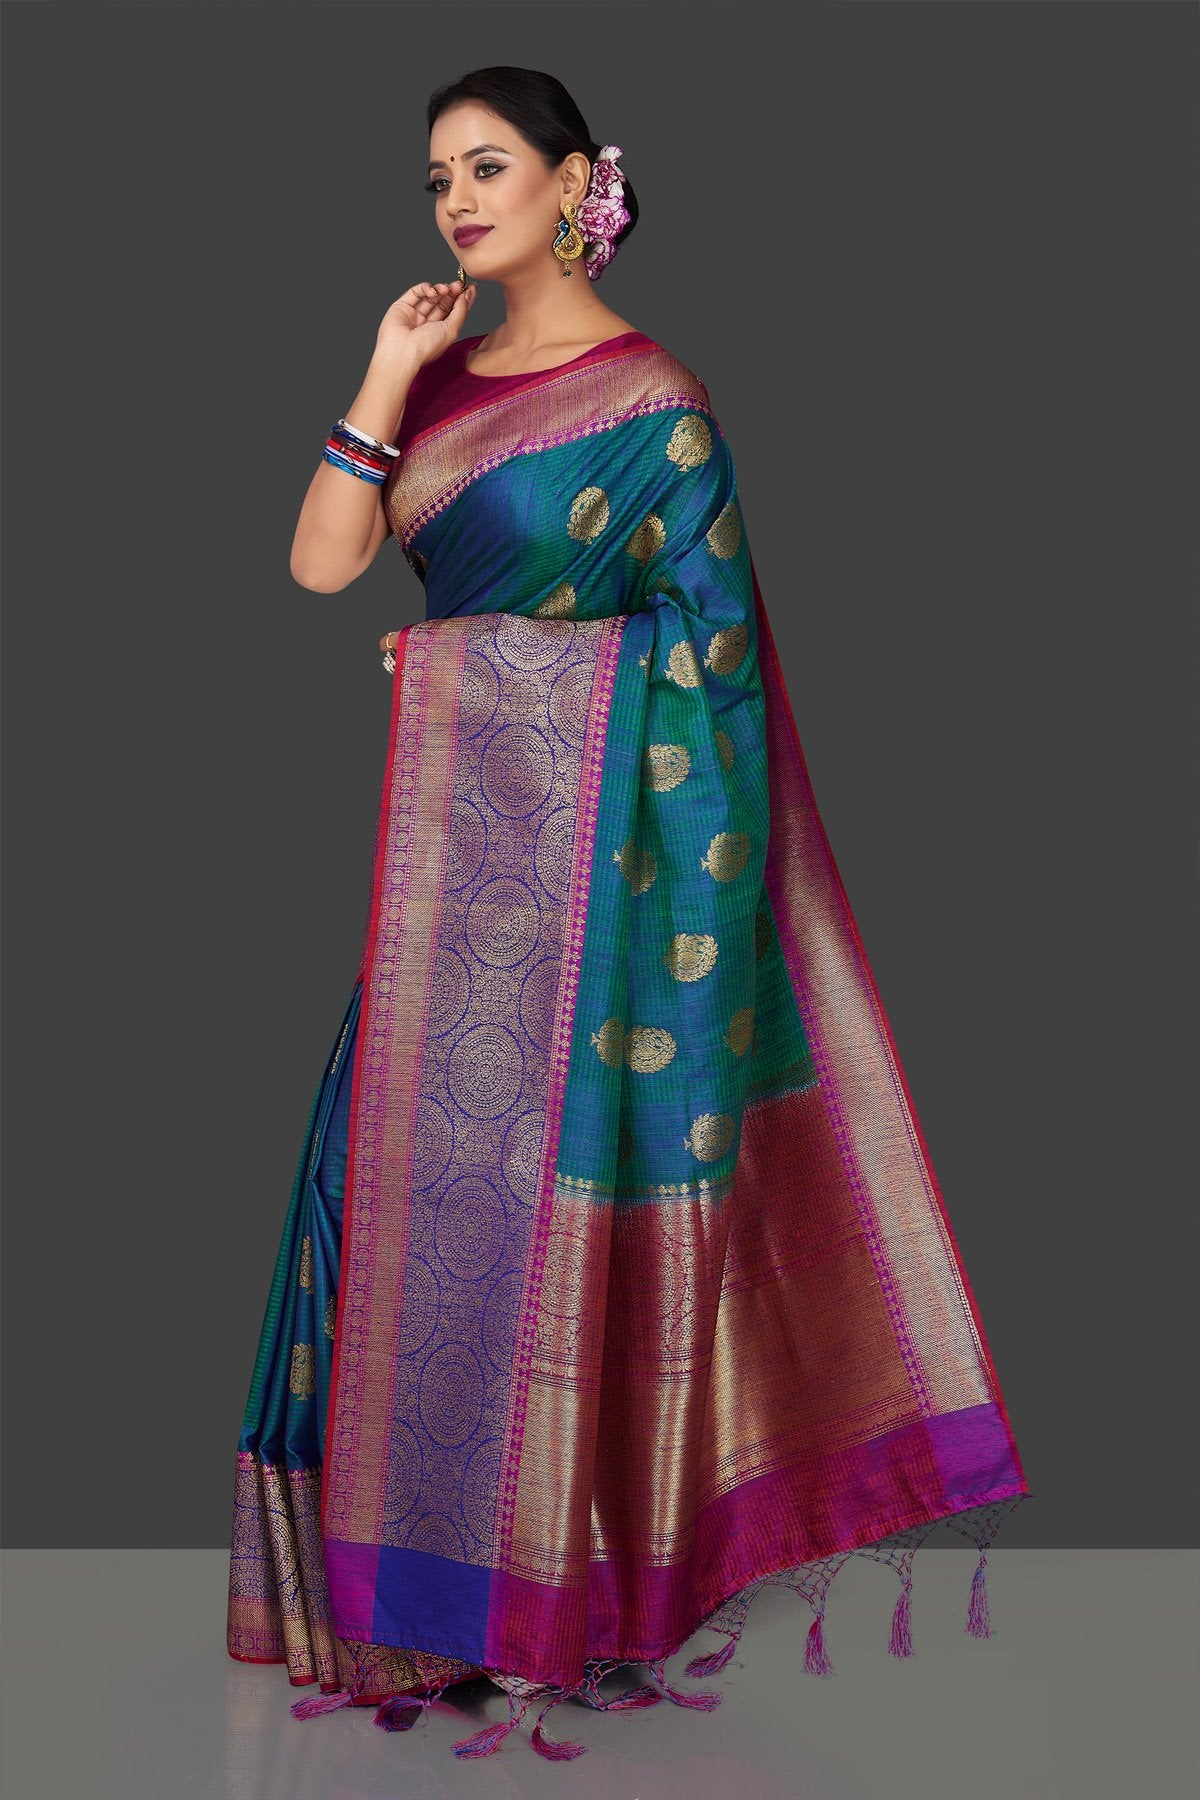 Buy stunning greenish blue tassar Banarasi sari online in USA with antique zari purple and blue border and zari buta. Garner compliments on weddings and special occasions with exquisite Banarasi saris, handwoven silk sarees, tussar sarees from Pure Elegance Indian fashion store in USA.-full view